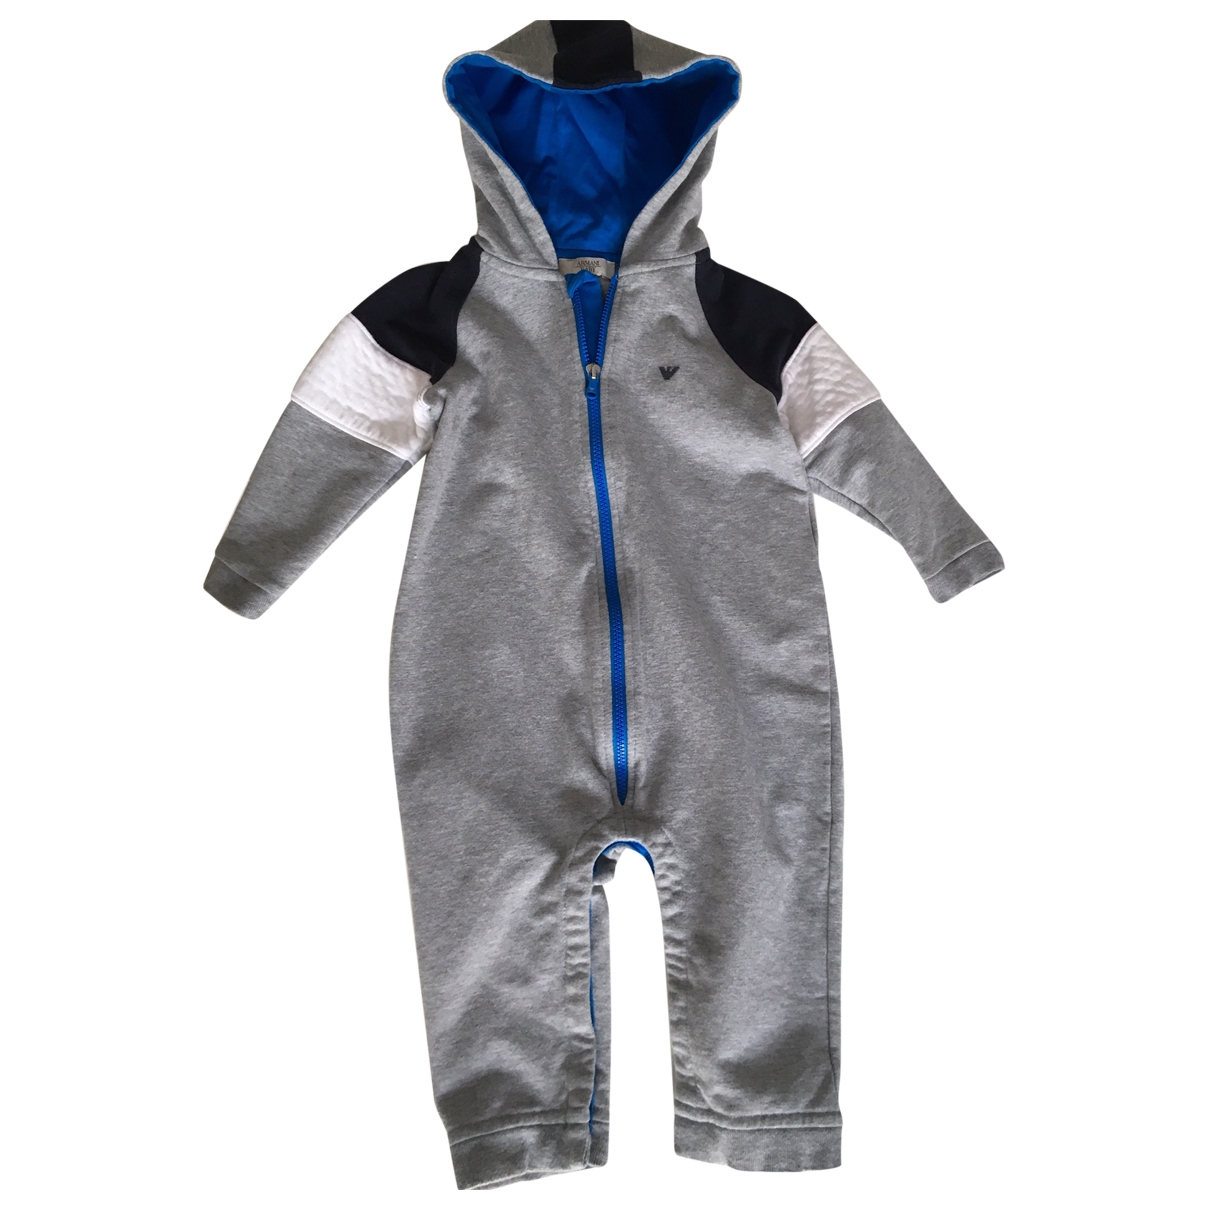 Armani Baby \N Grey Cotton jacket & coat for Kids 12 months - up to 74cm FR